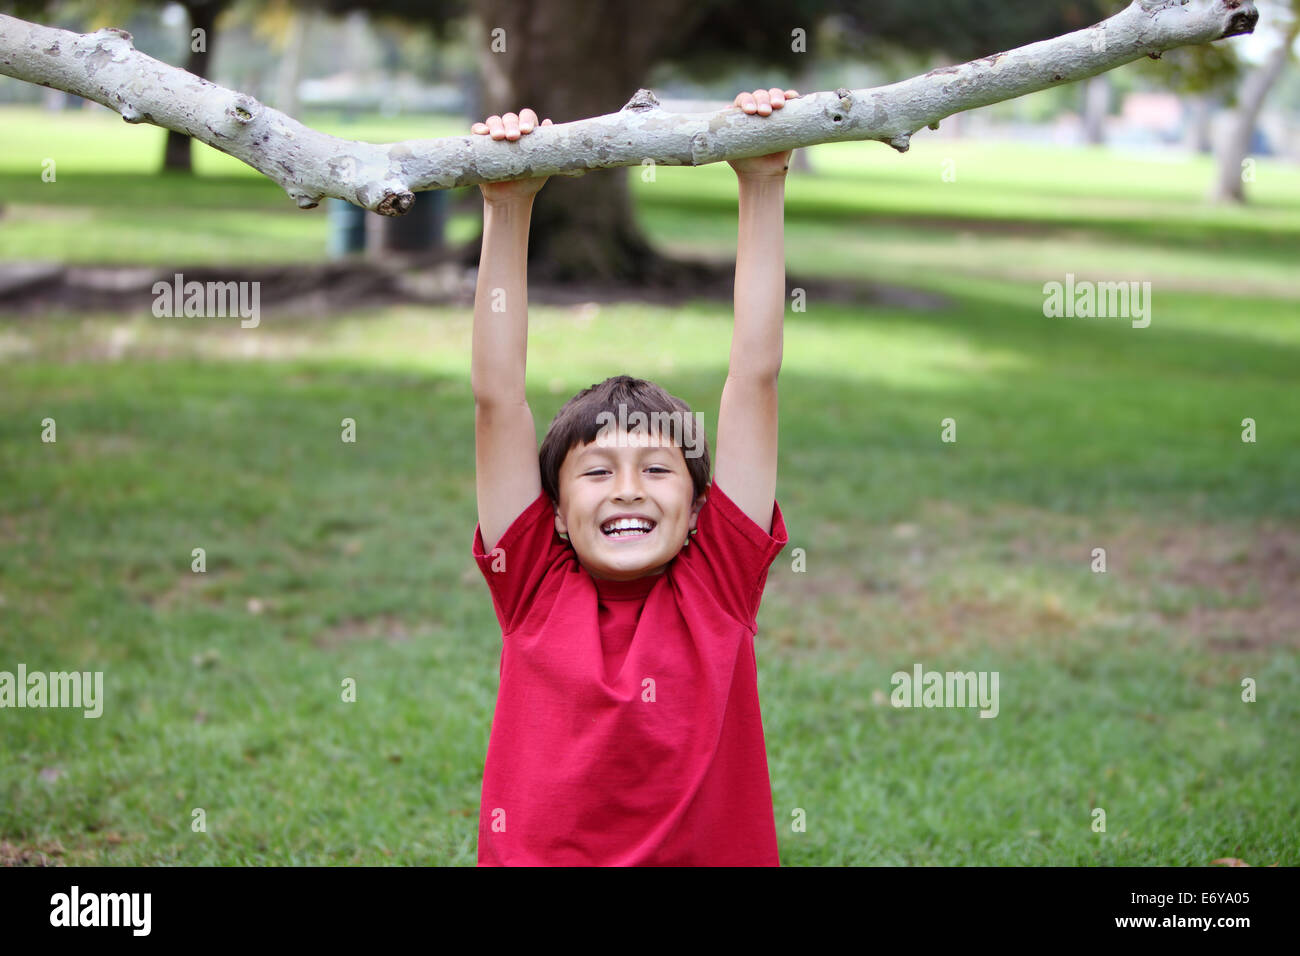 Happy young boy hanging from a tree branch at the park - Stock Image